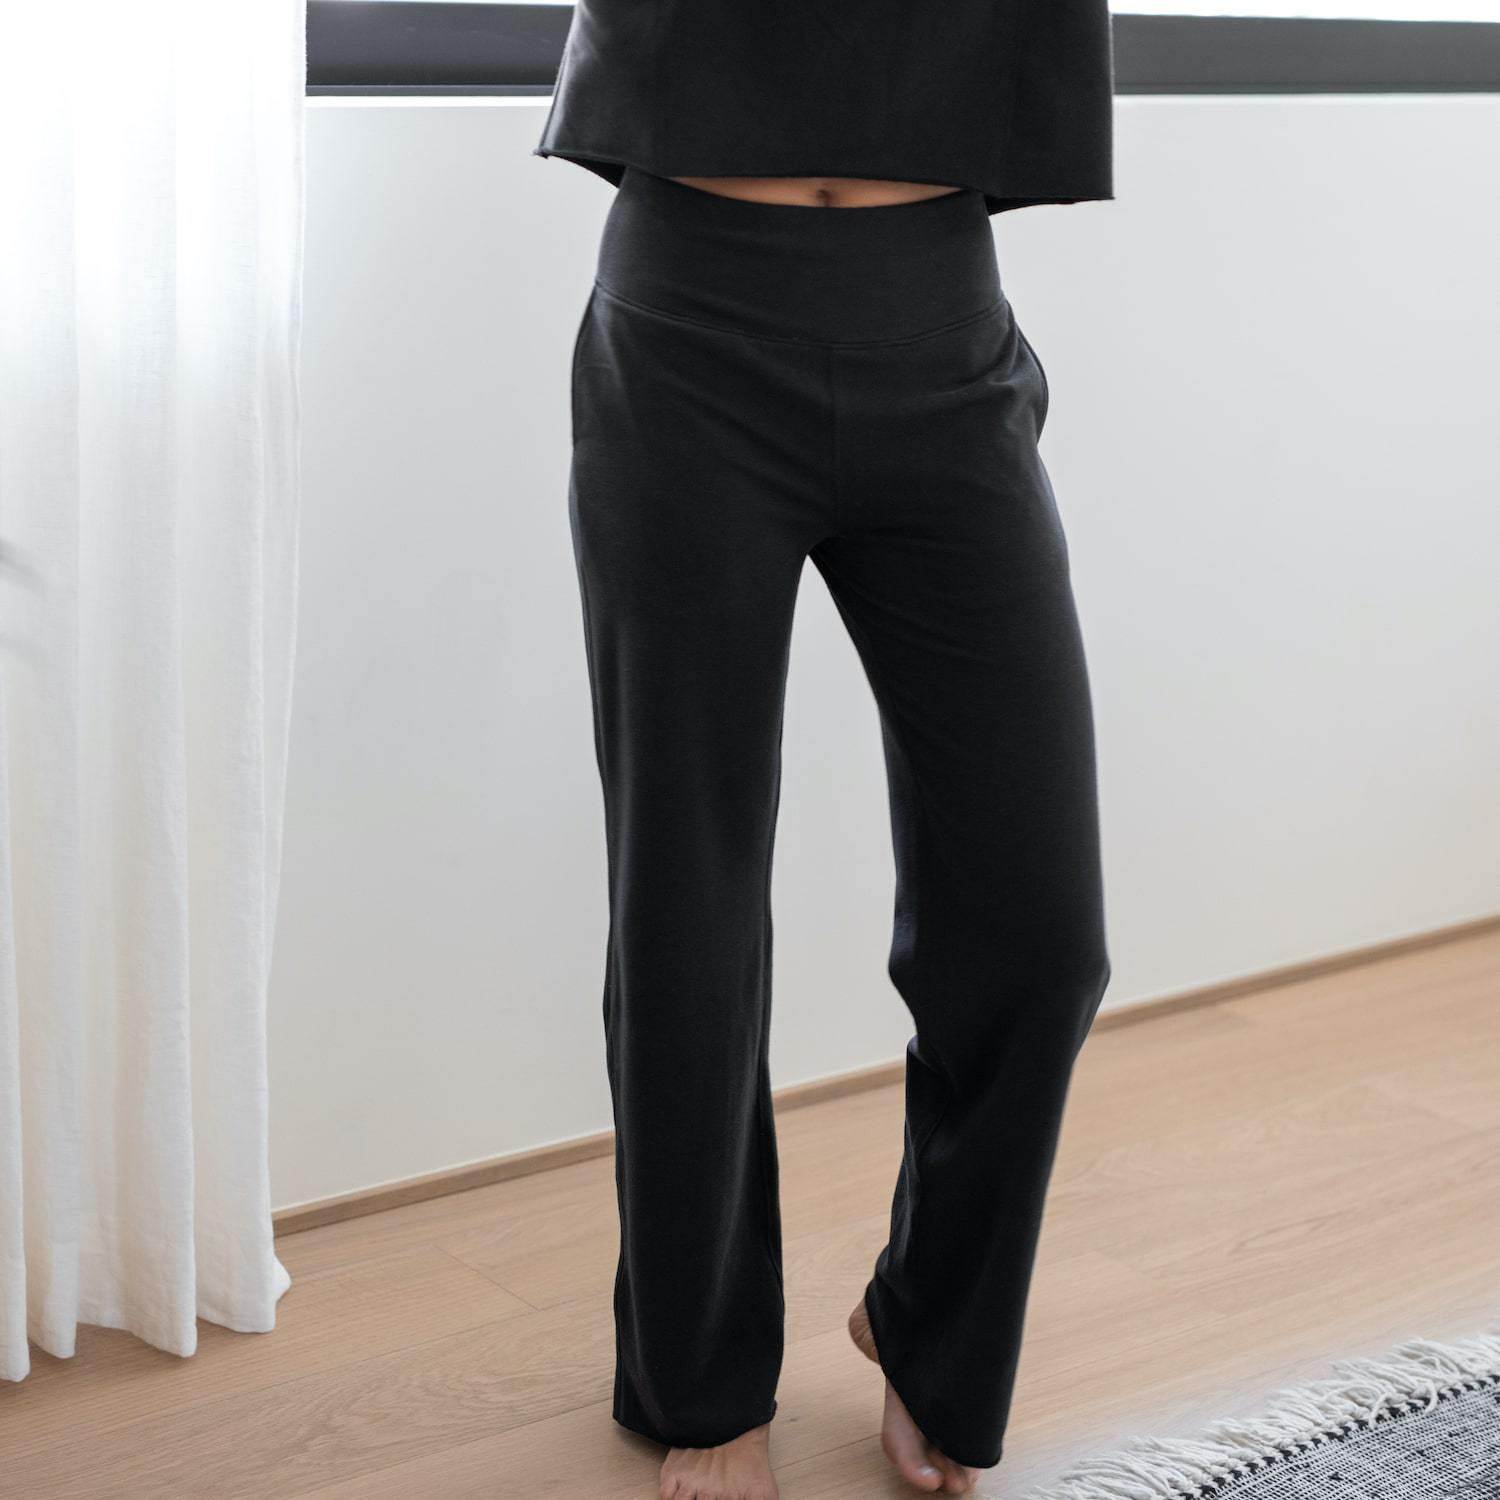 Lunya Sleepwear Cozy Pima Alpaca Fleece High Rise Sweatpant - #Black